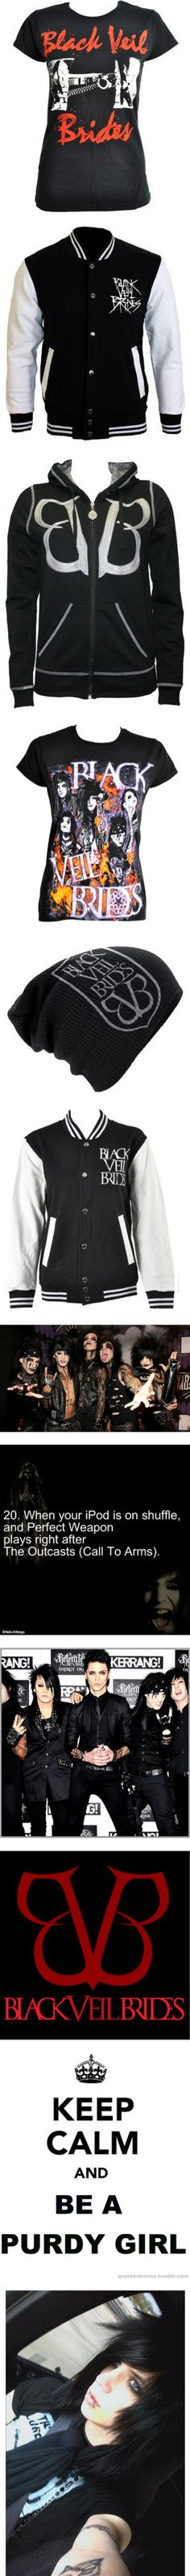 """Black Veil Brides Stuff 3"" by escapethefate07 ❤ liked on Polyvore"